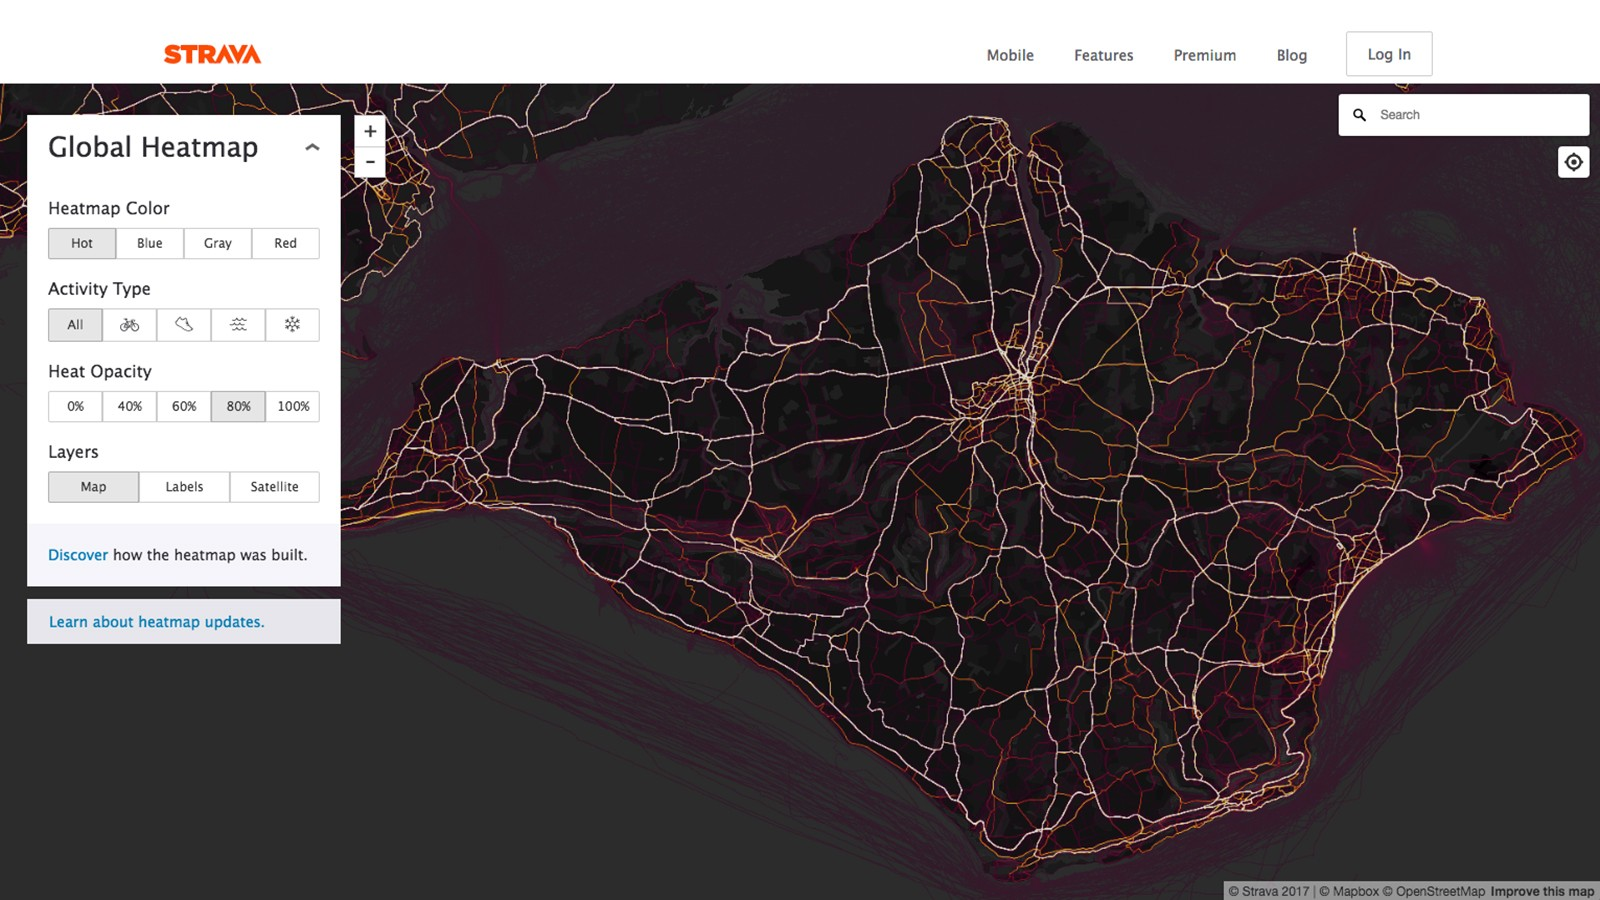 Having revealed secret US bases abroad, Strava's 'heatmap' unearthed evidence of rudimentary roads on the Isle of Wight. Sensational